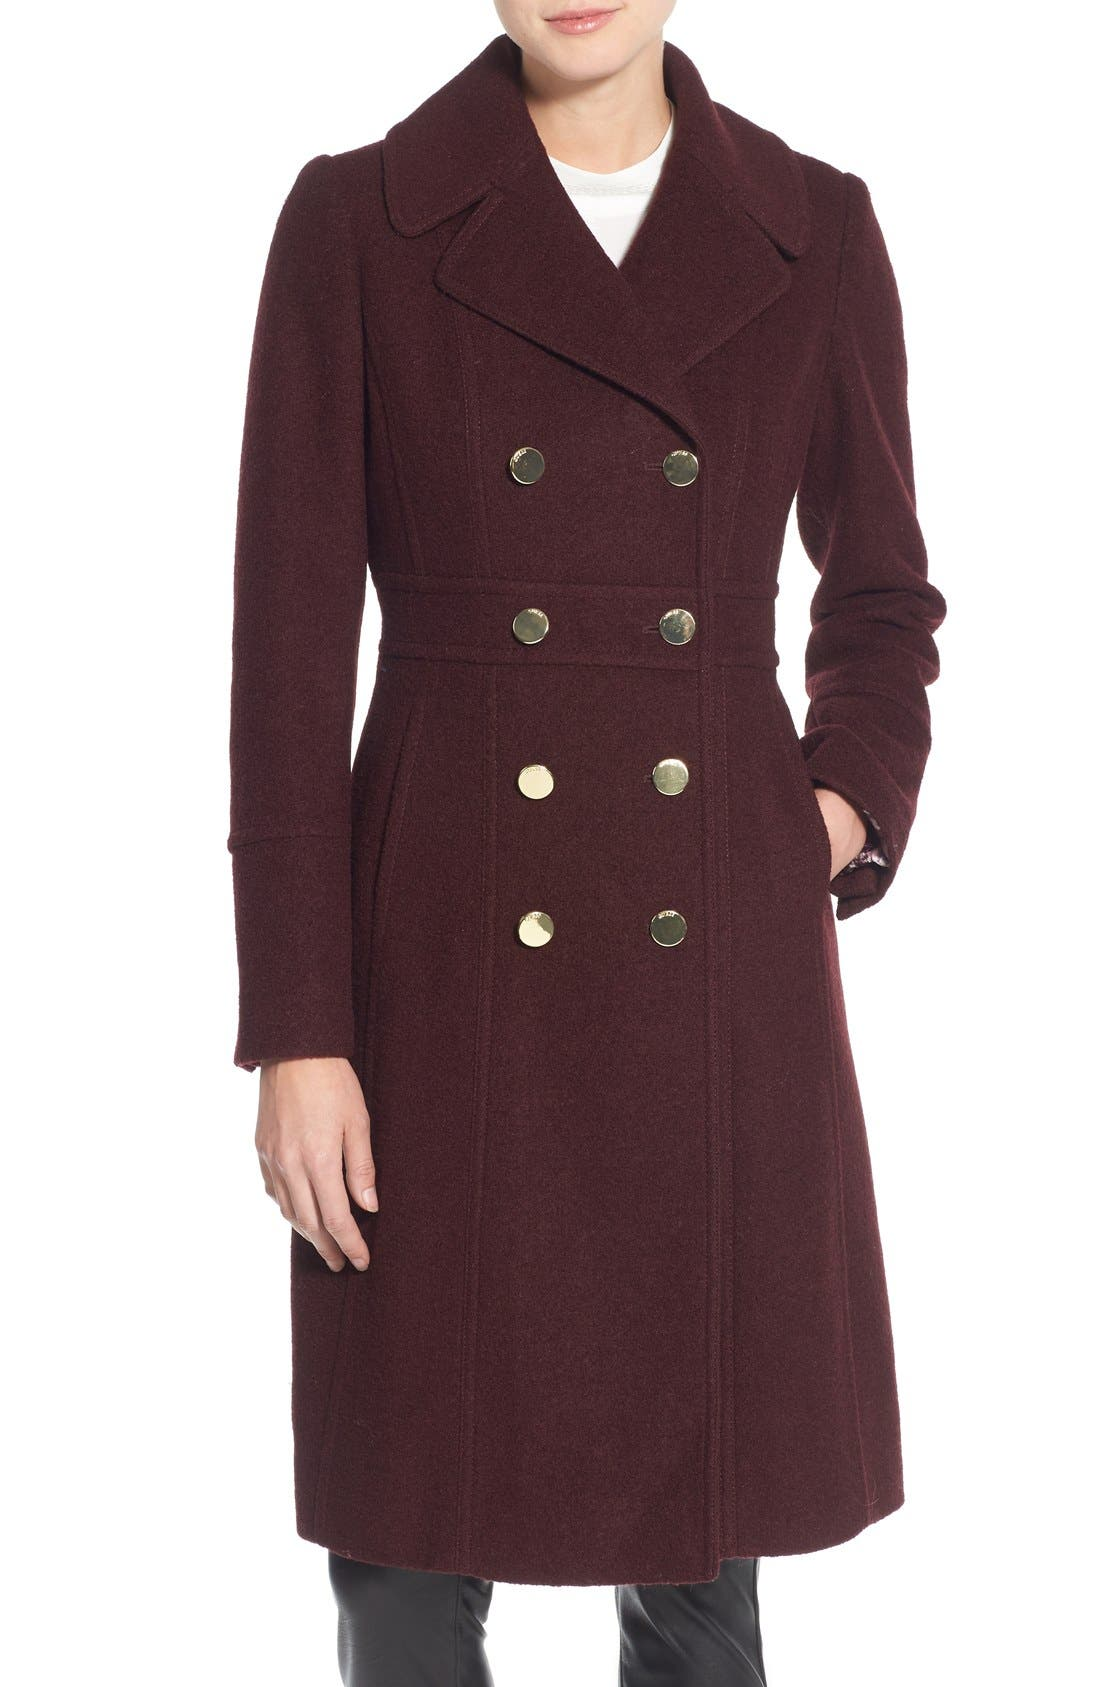 Alternate Image 1 Selected - GUESS Fit & Flare Military Coat